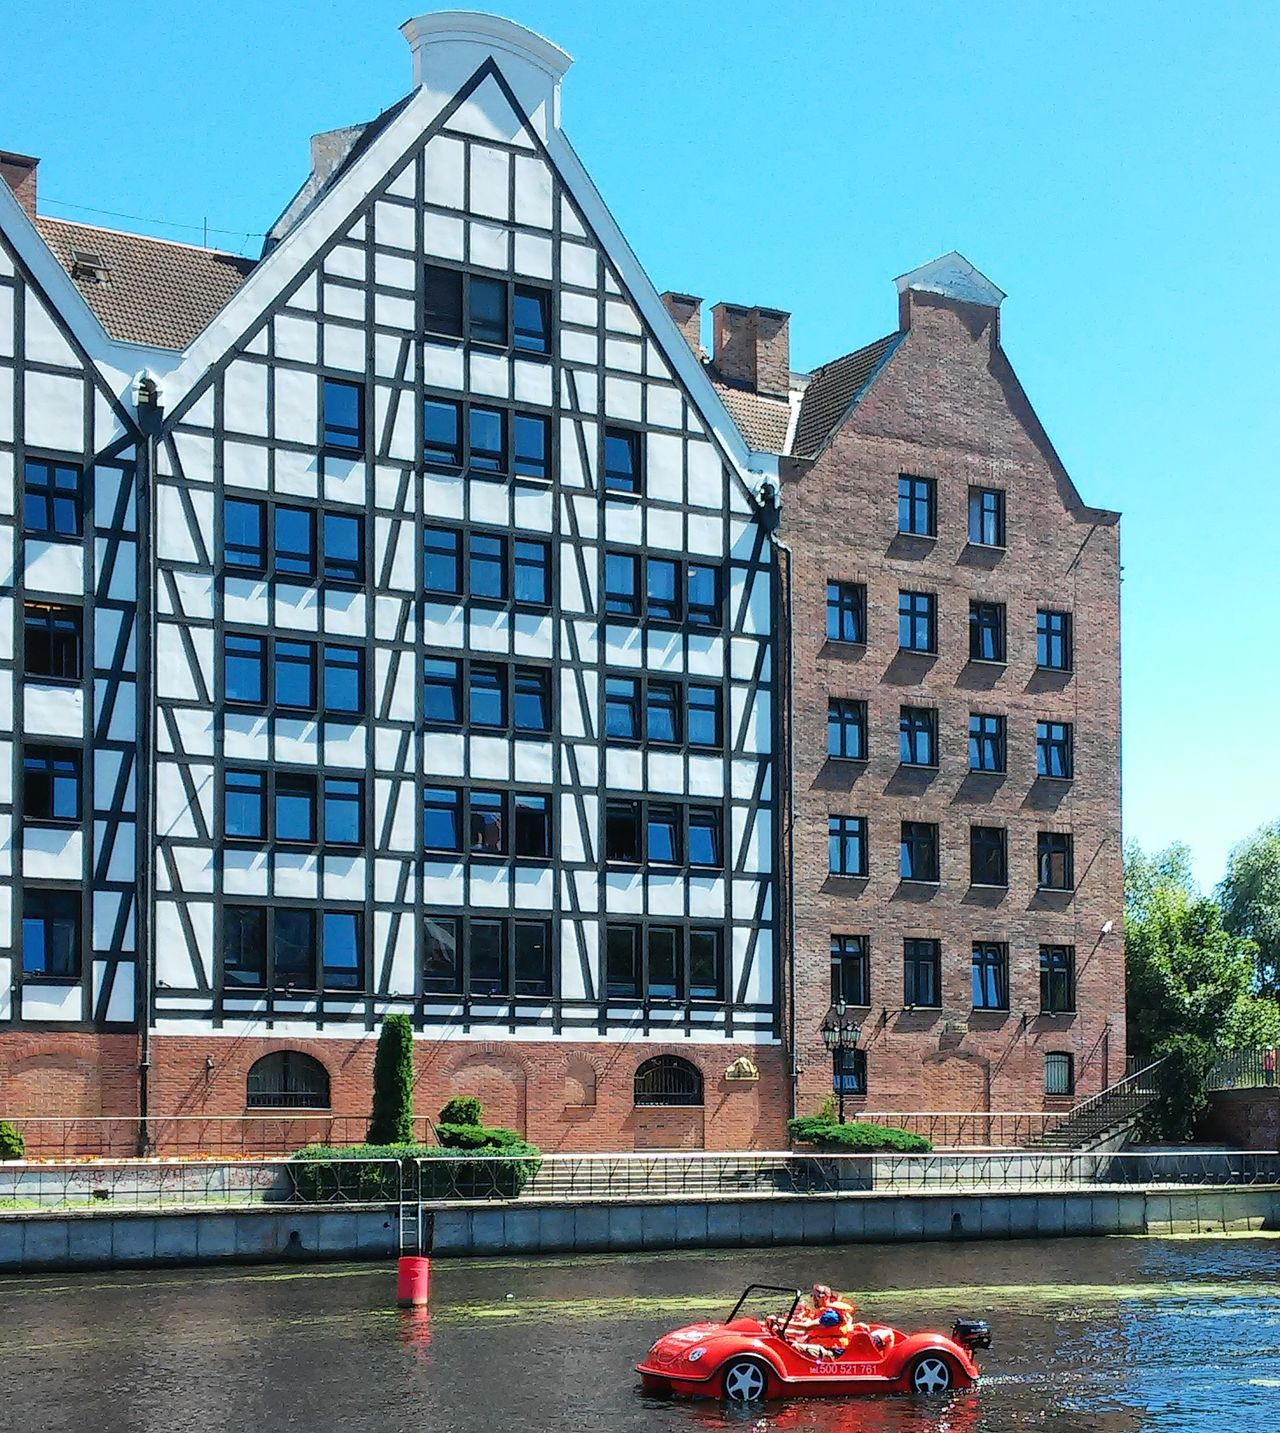 Amsterdam vibes in Poland #Amsterdam  #boat #Gdansk #river #symmetry #Windows Architecture Clear Sky Outdoors Window EyeEmNewHere